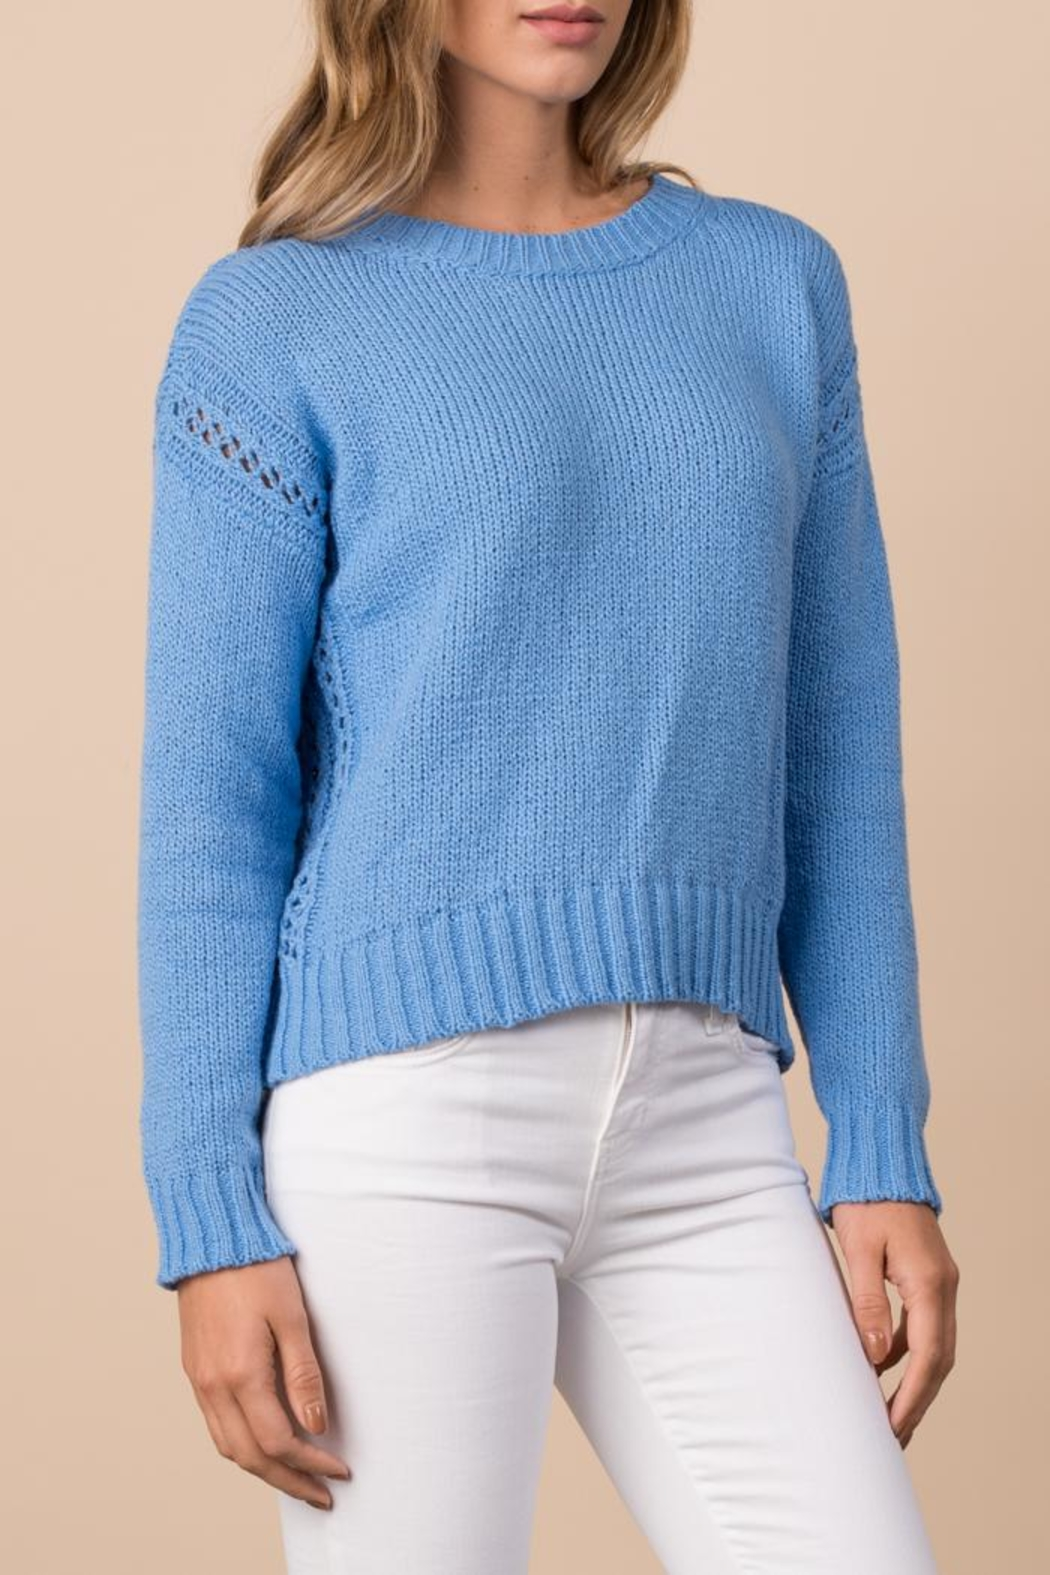 Margaret O'Leary Crimped Cotton Pullover - Main Image